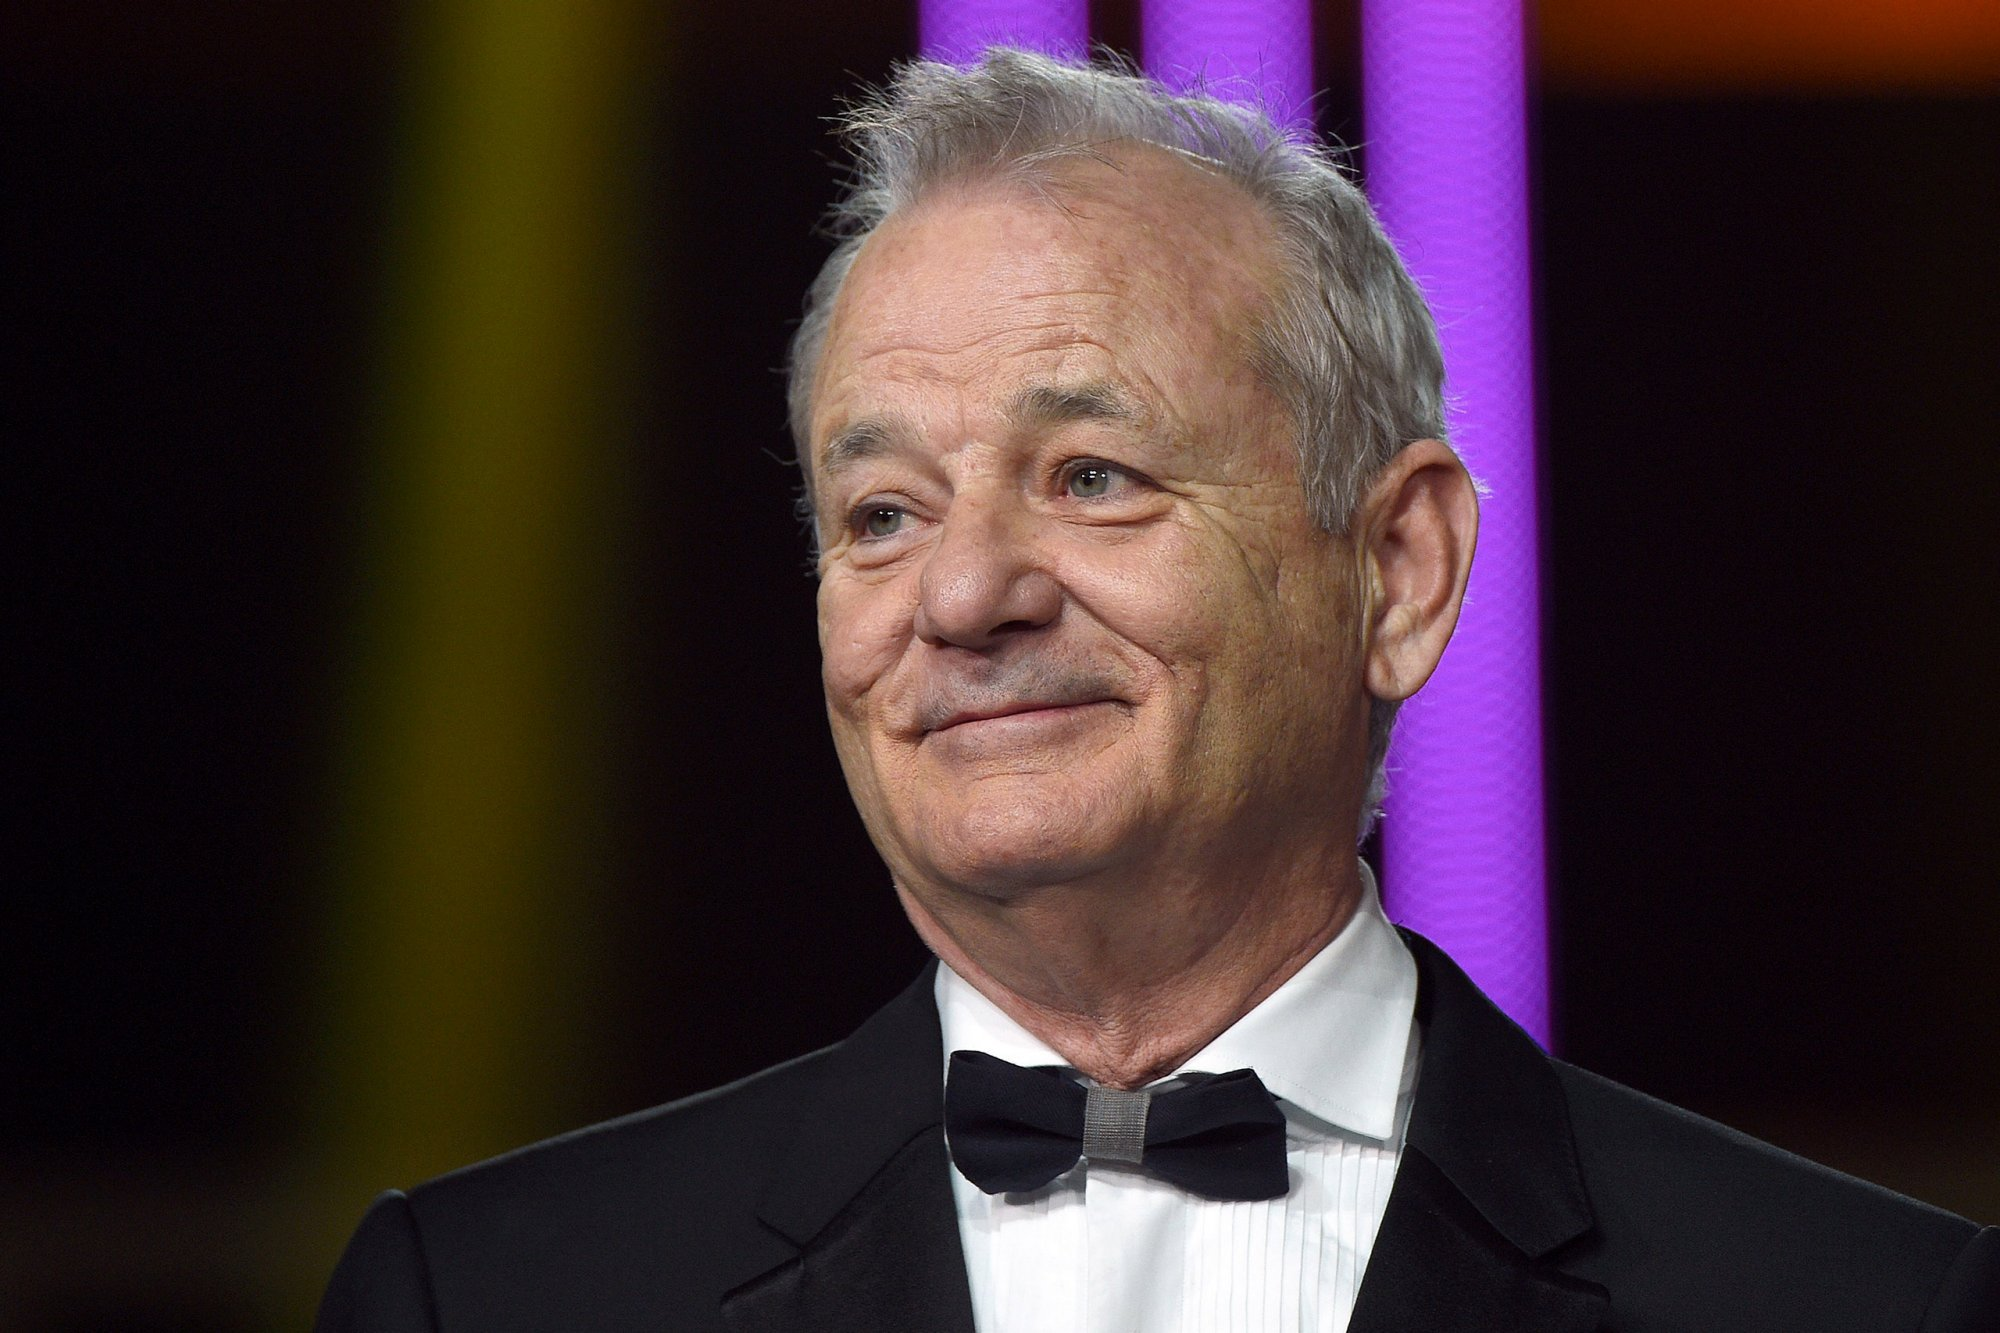 bill murray hd wallpaper - photo #1